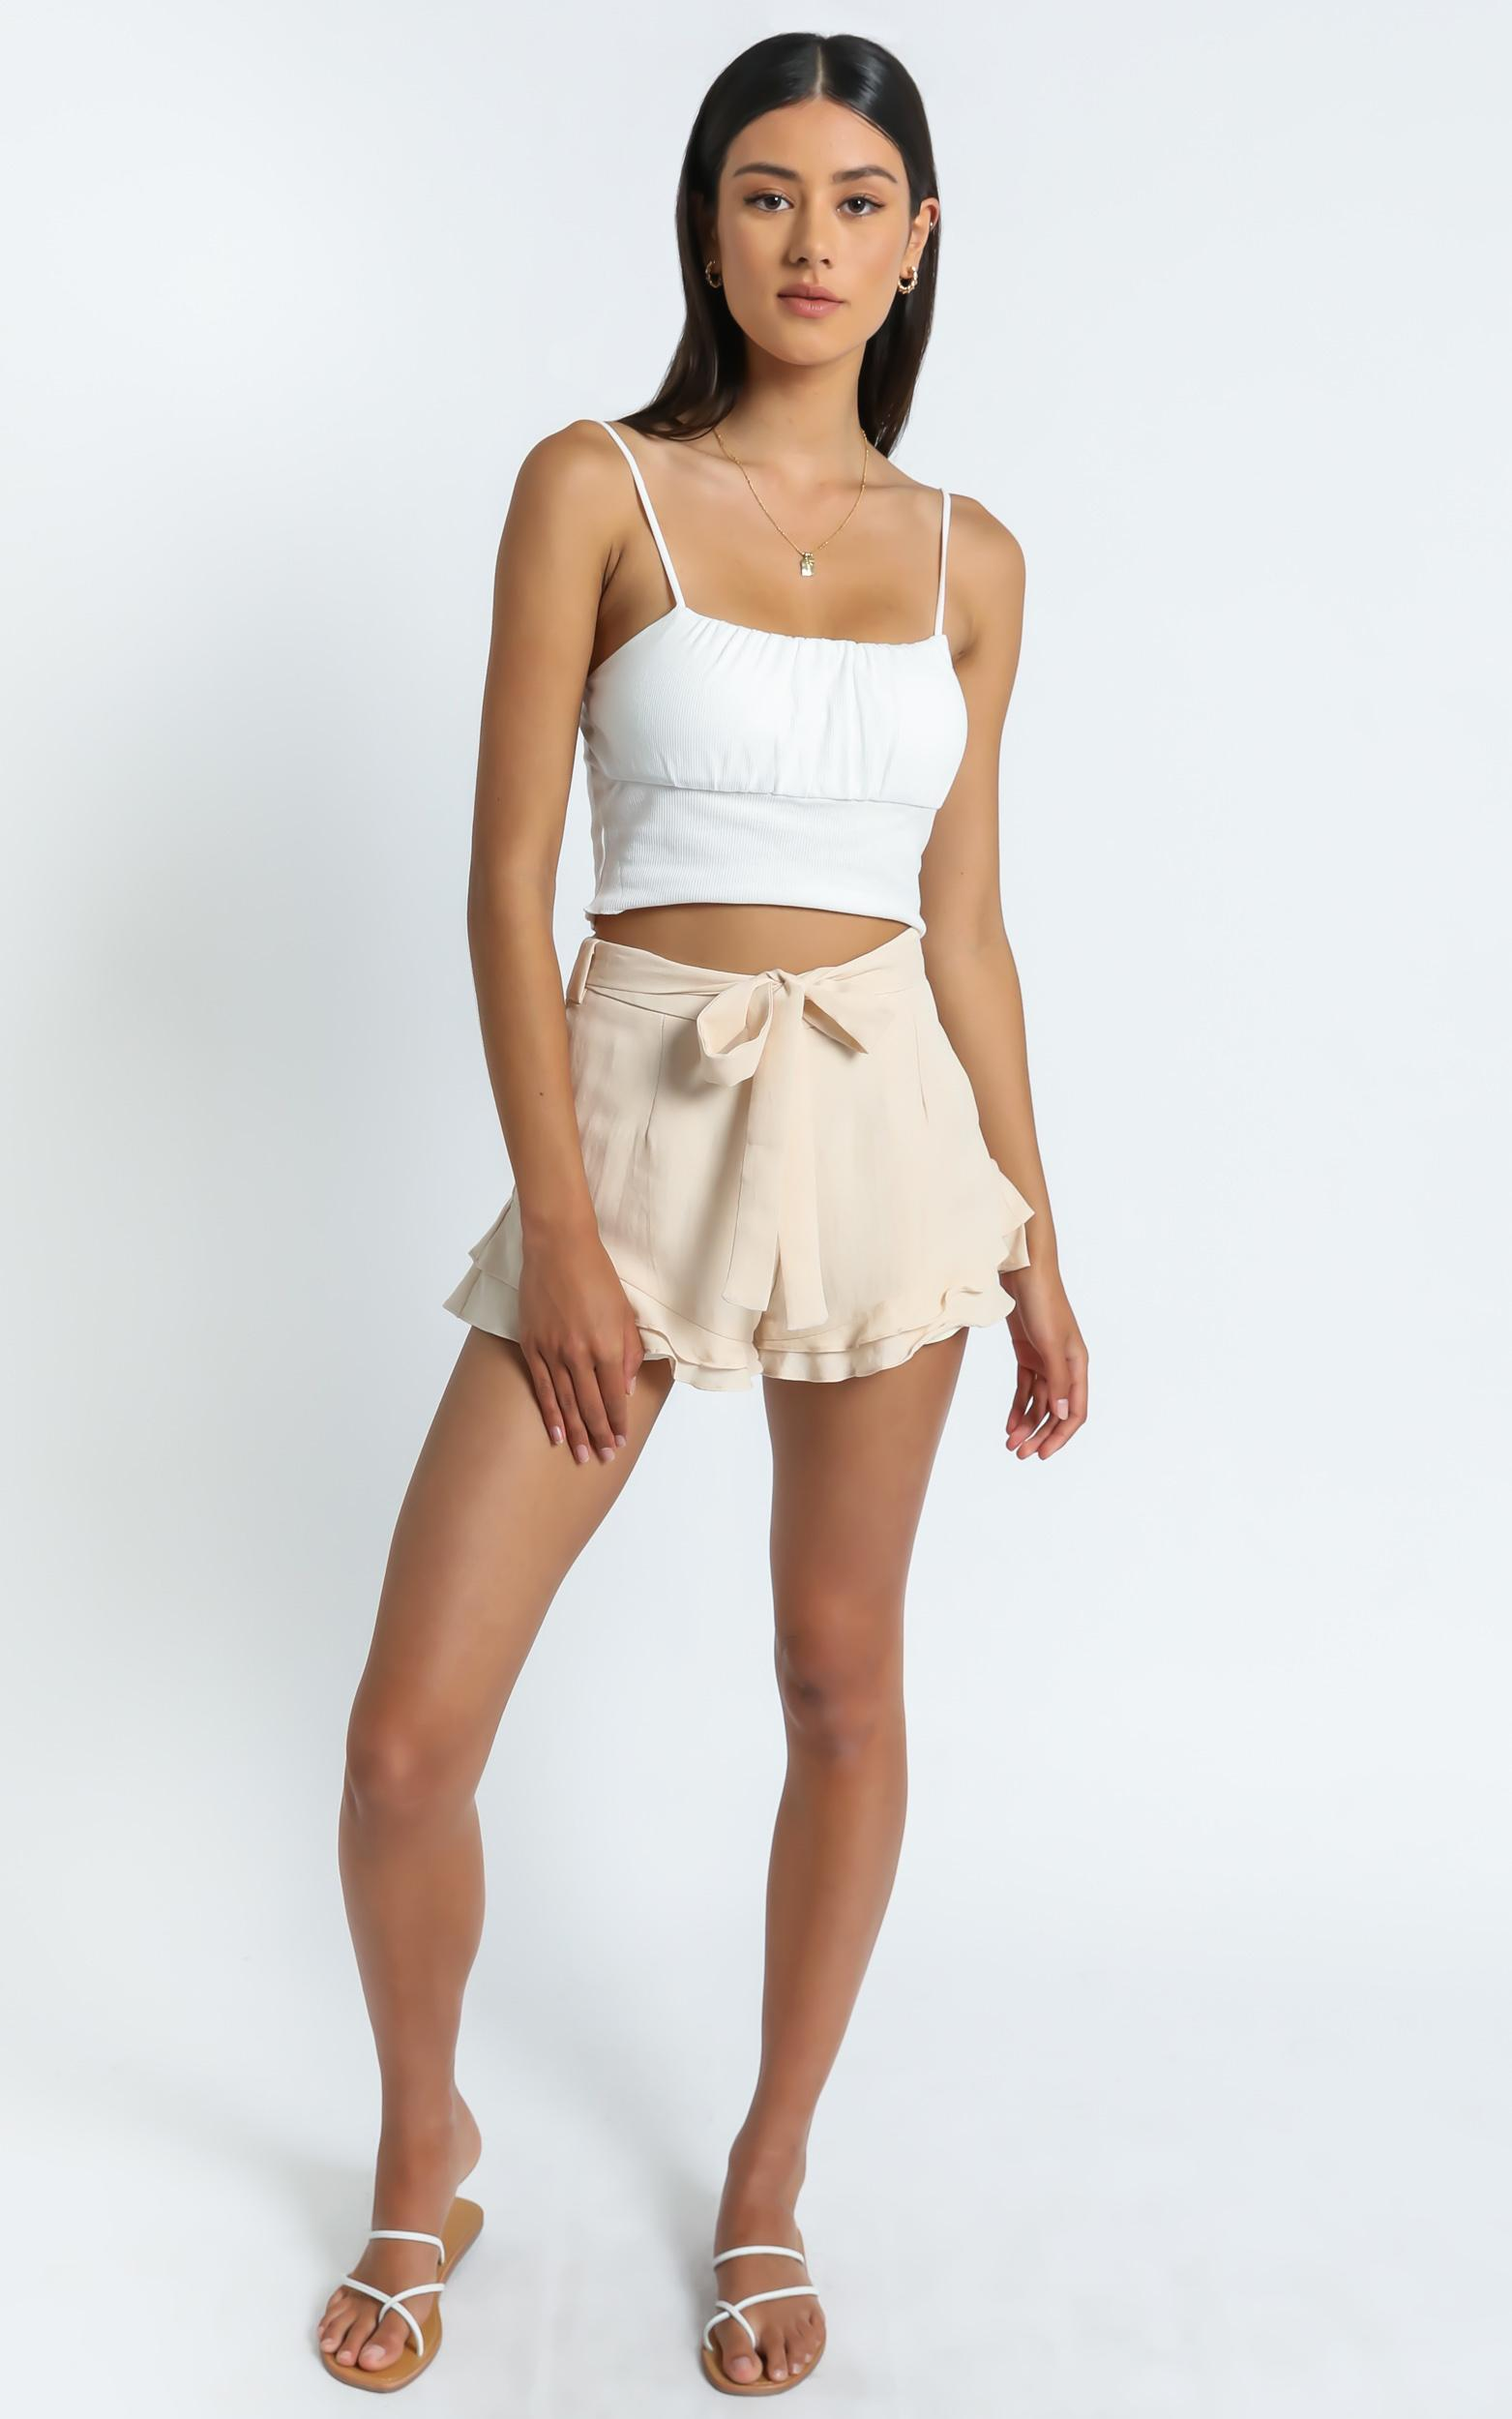 Julieta Top in White - S/M, White, hi-res image number null